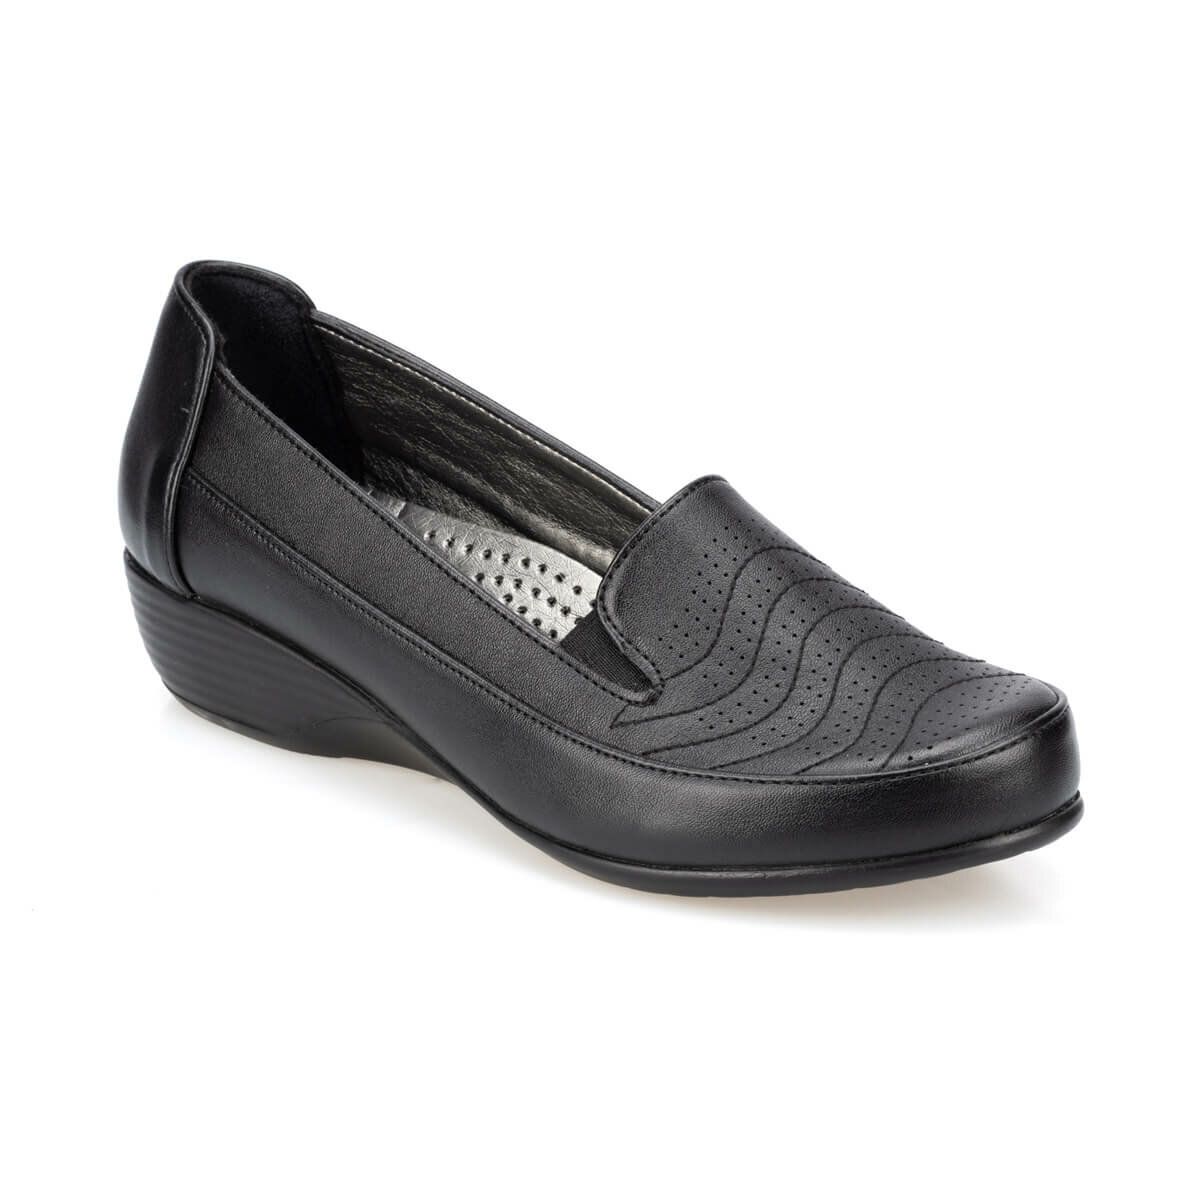 FLO 91.158477.Z Black Women Shoes Polaris